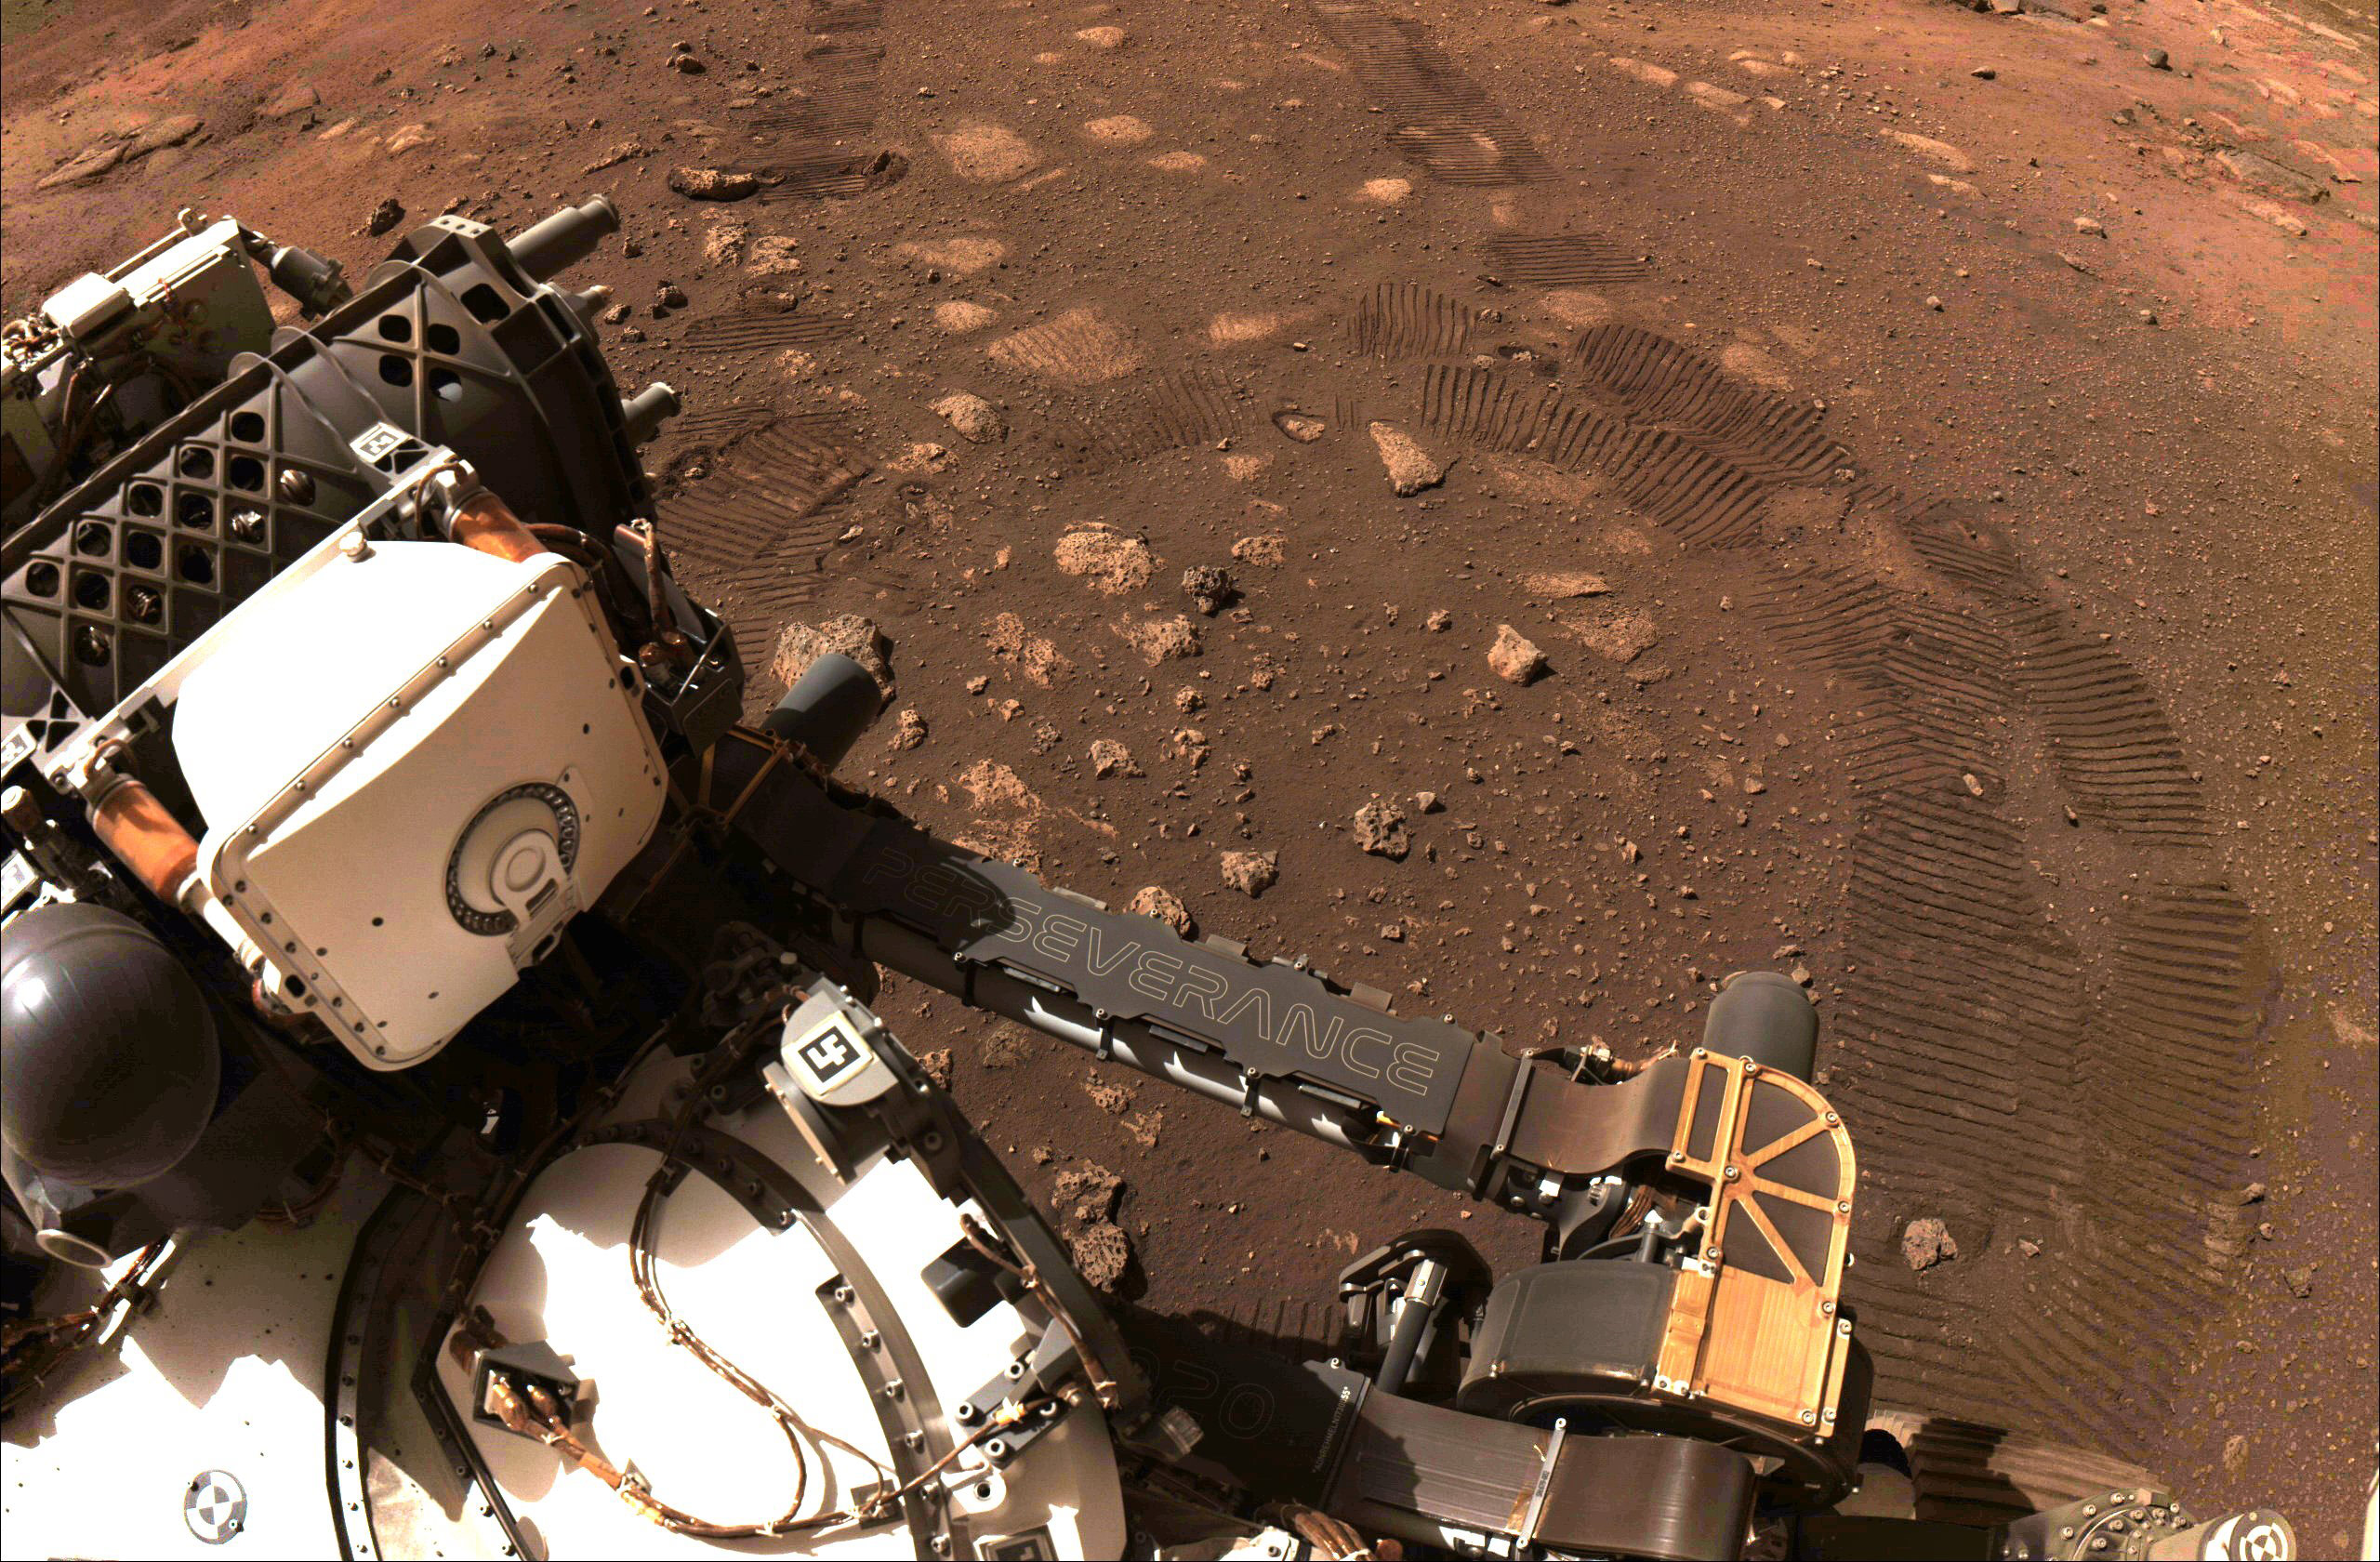 Perseverance rover takes its first drive on Mars, sends back image